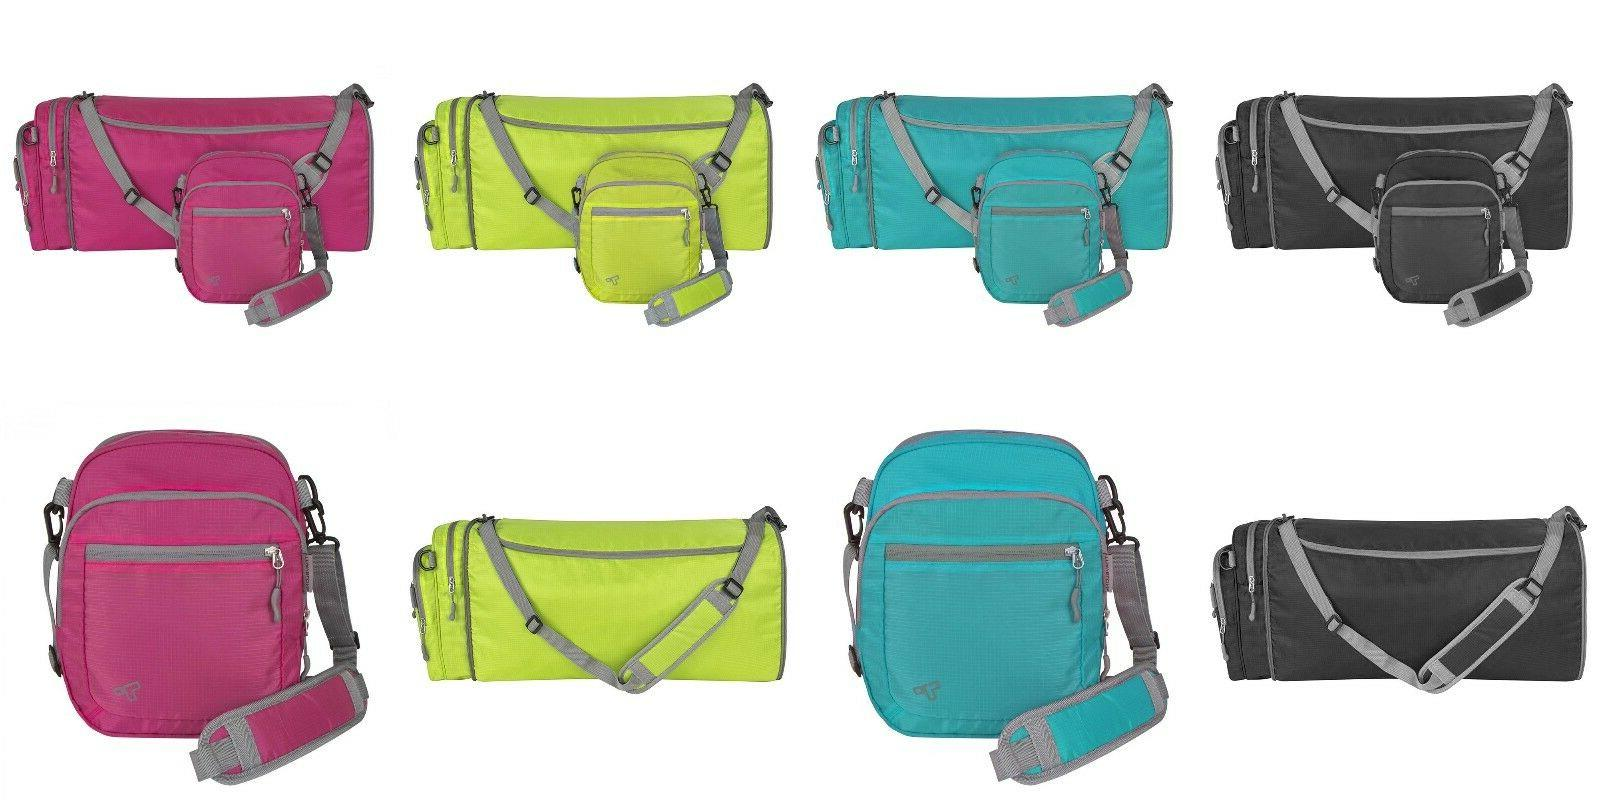 Travelon Convertible 2-in-1 Crossbody Messenger Travel to Du